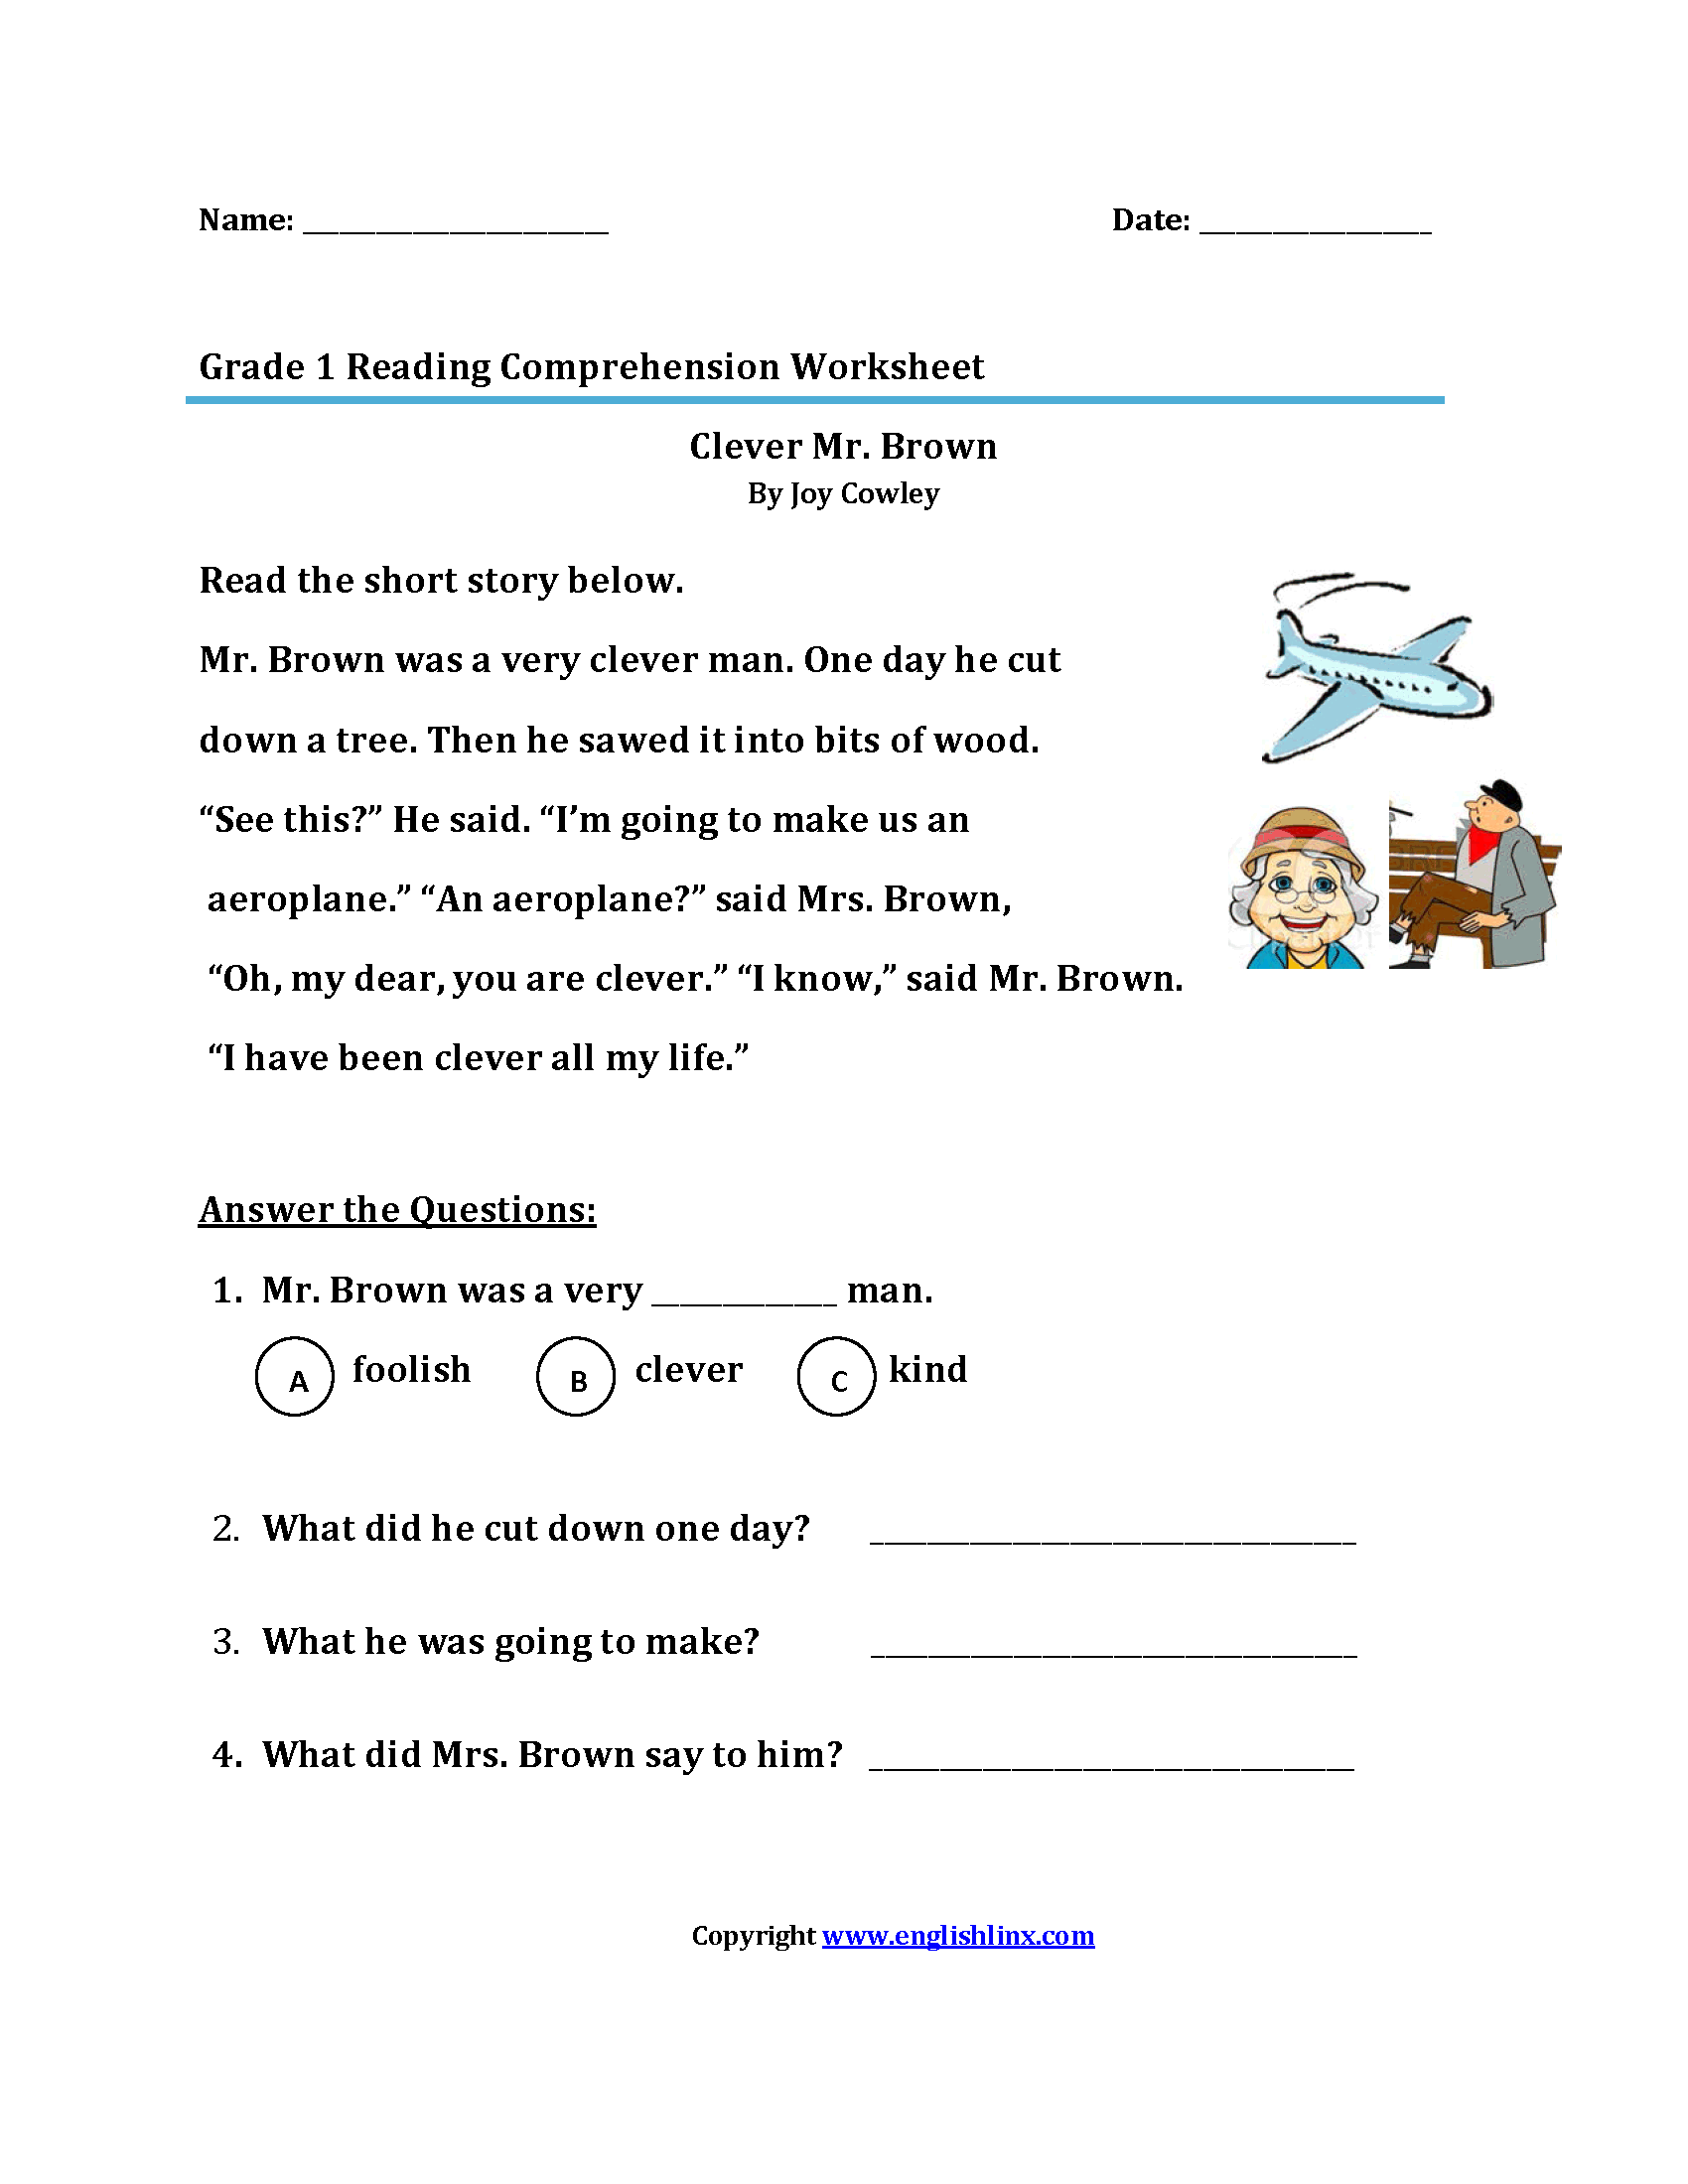 Worksheets Reading Comprehension Worksheets First Grade reading worksheets first grade worksheets